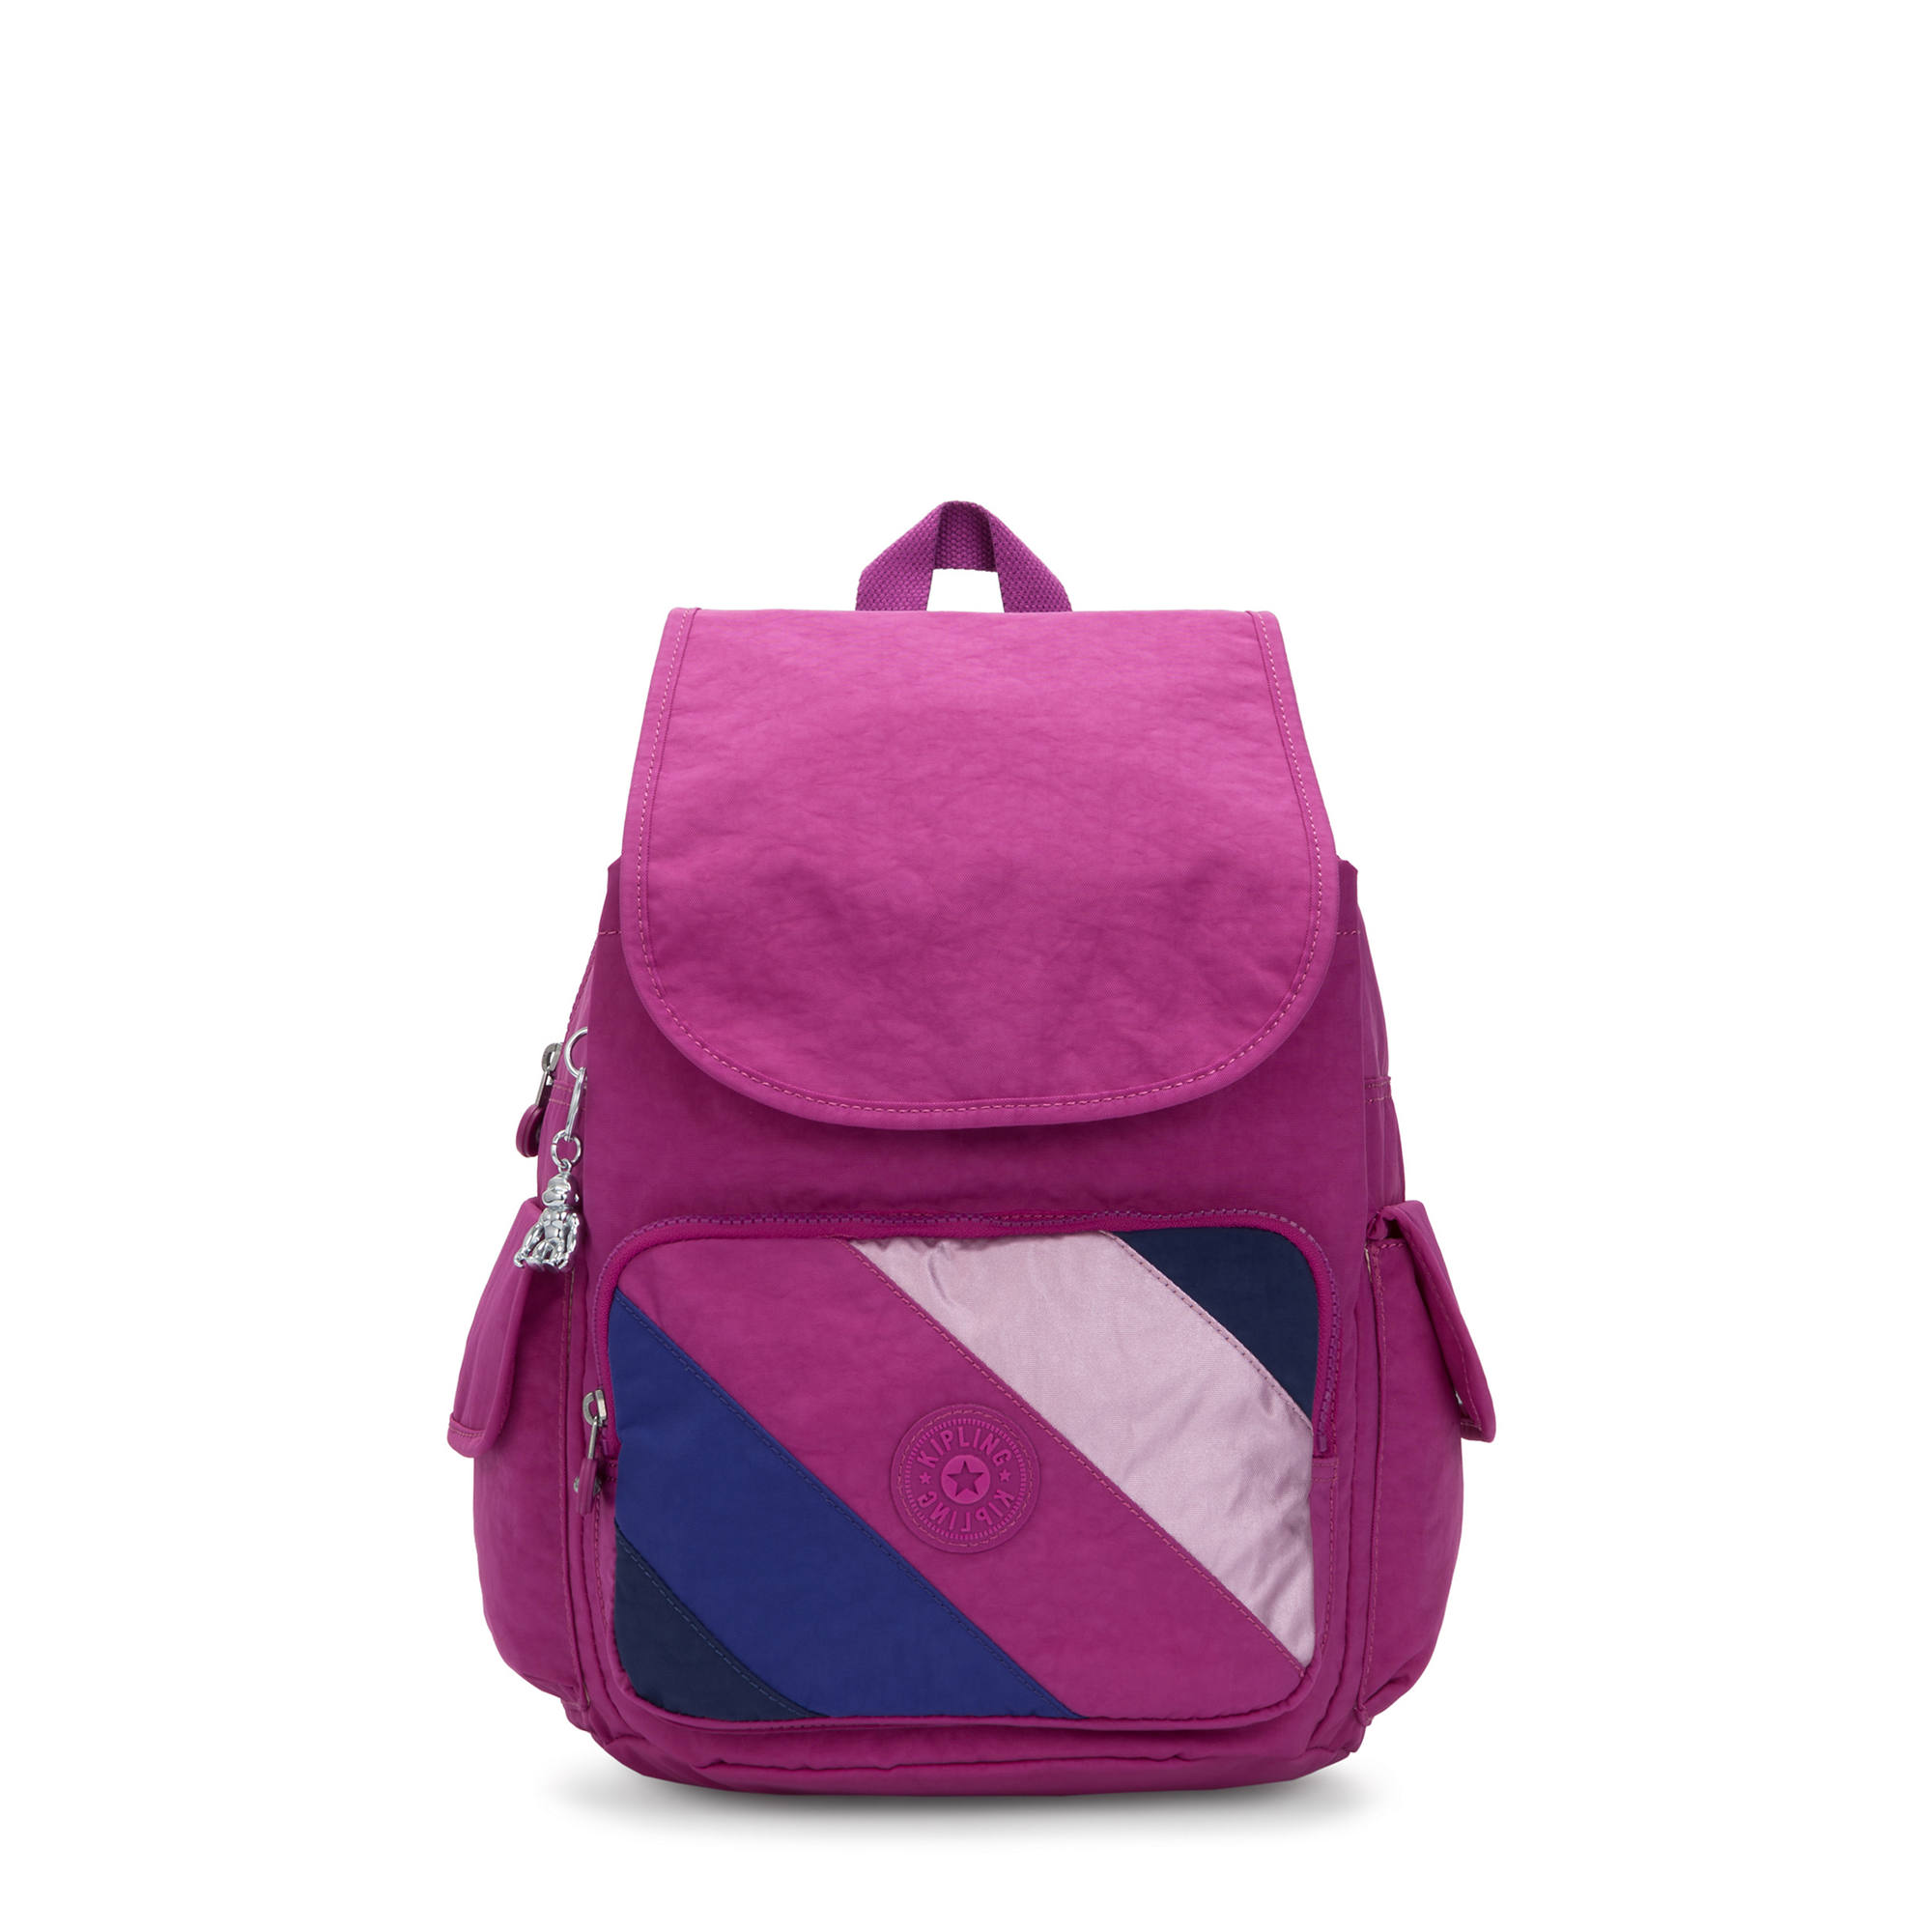 City Pack Medium Backpack,Pink Mix Block,large-zoomed